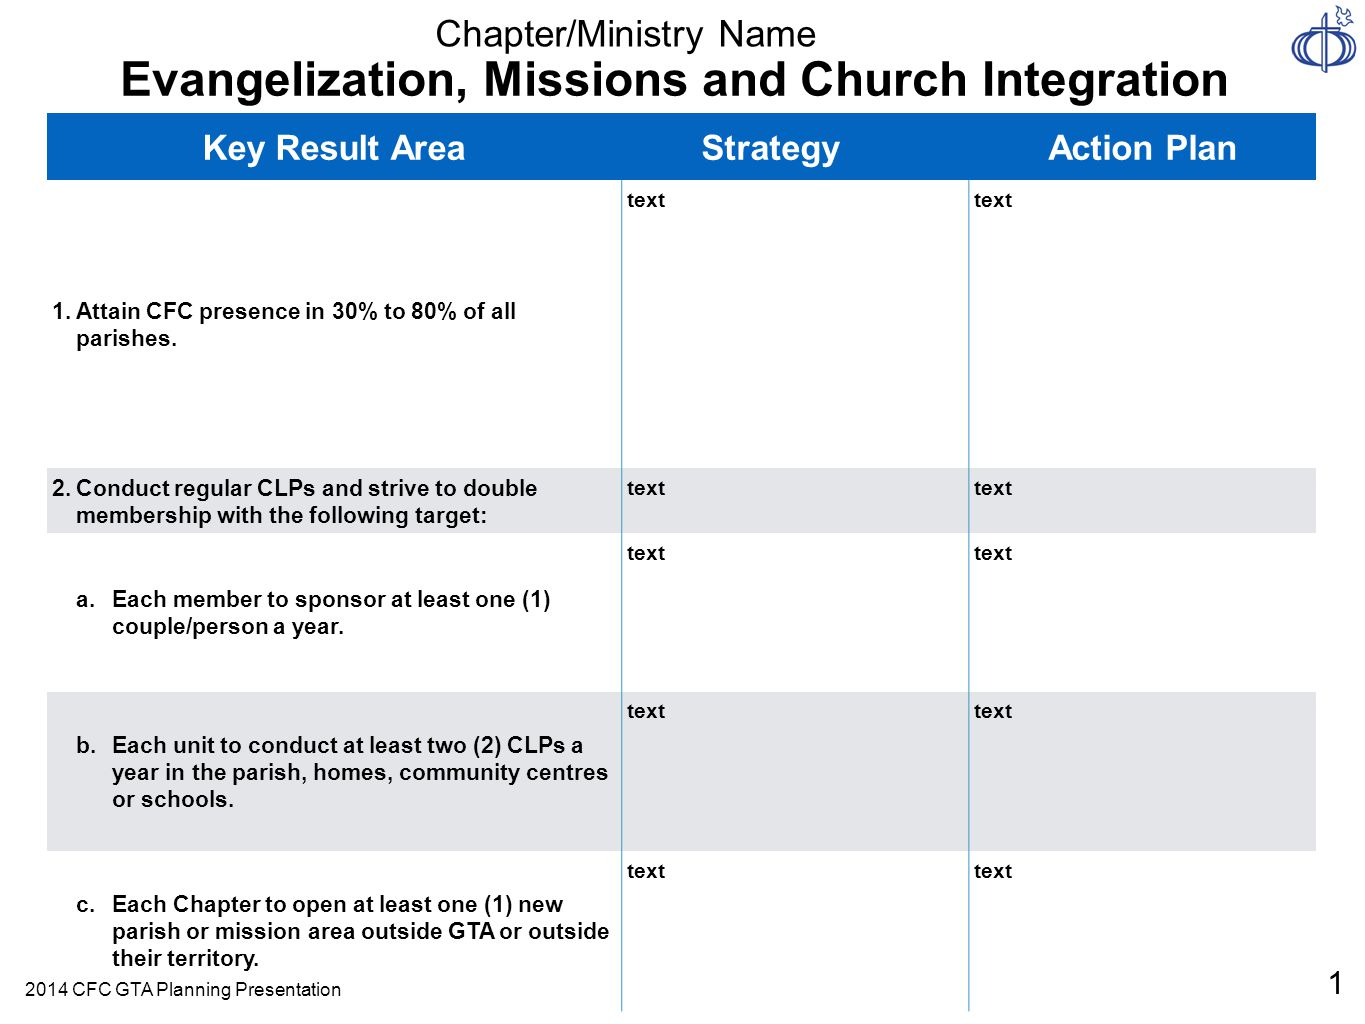 Evangelization, Missions and Church Integration